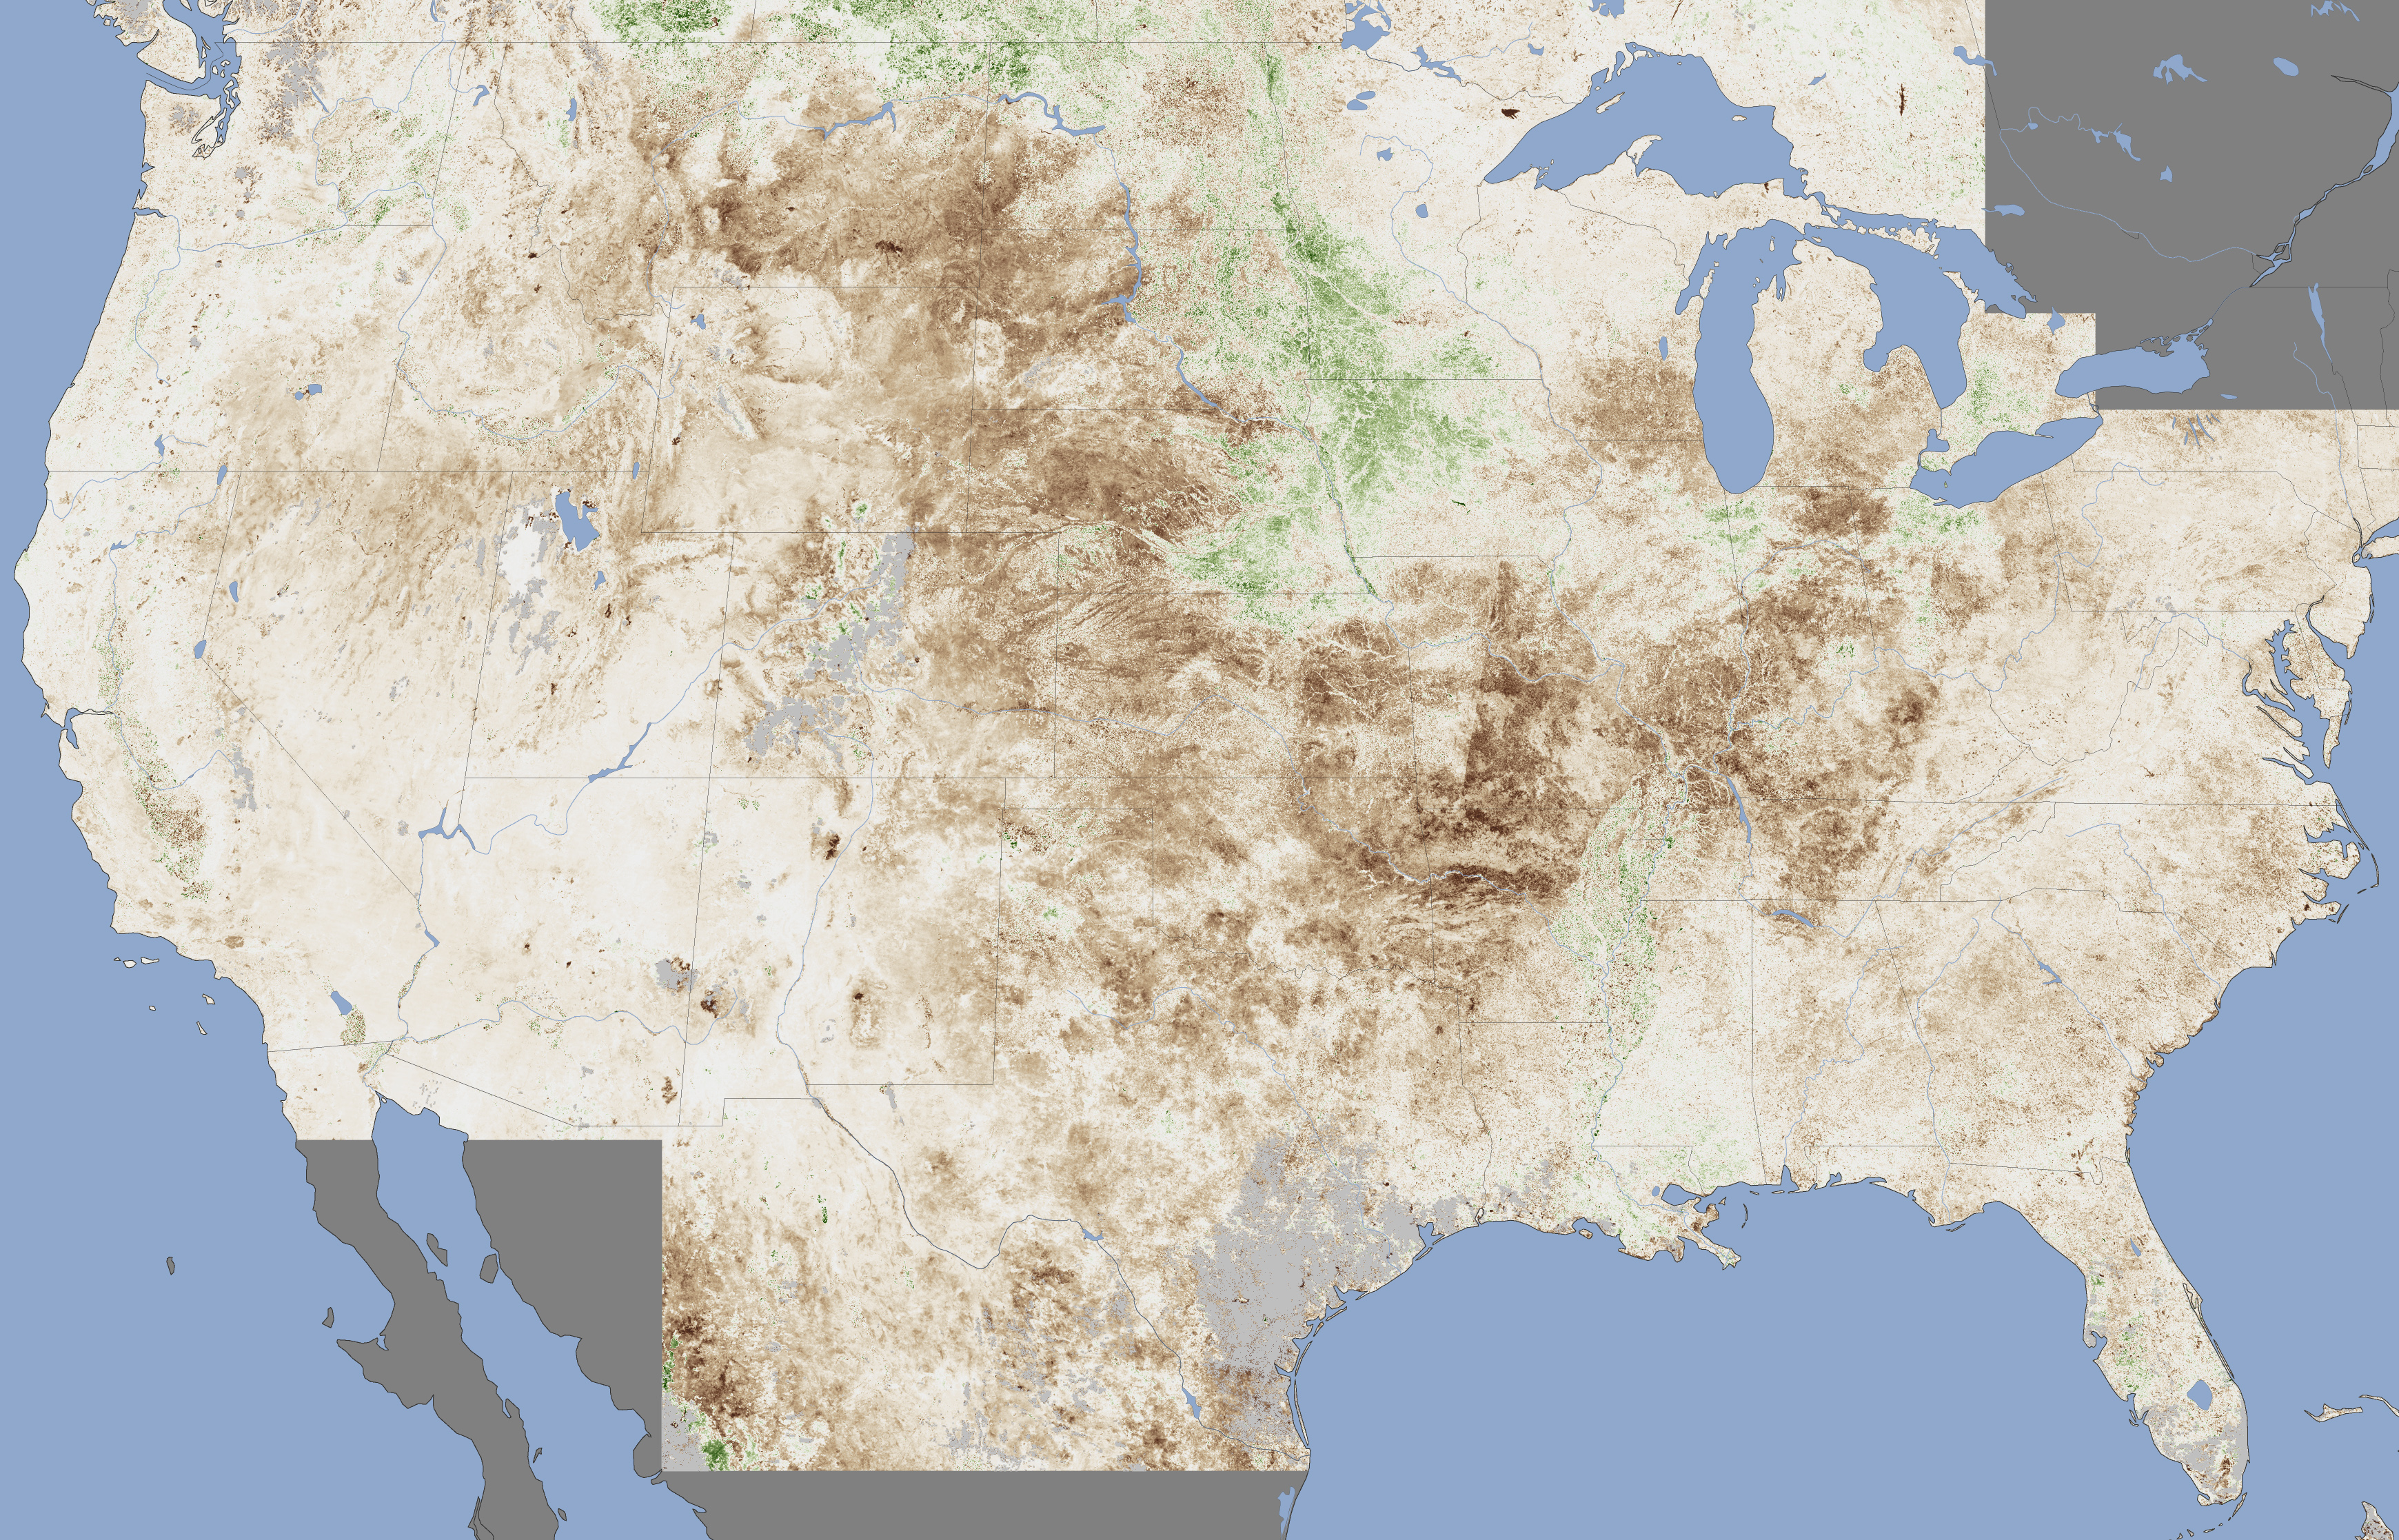 Drought Grips The United States Image Of The Day - Us map day nasa